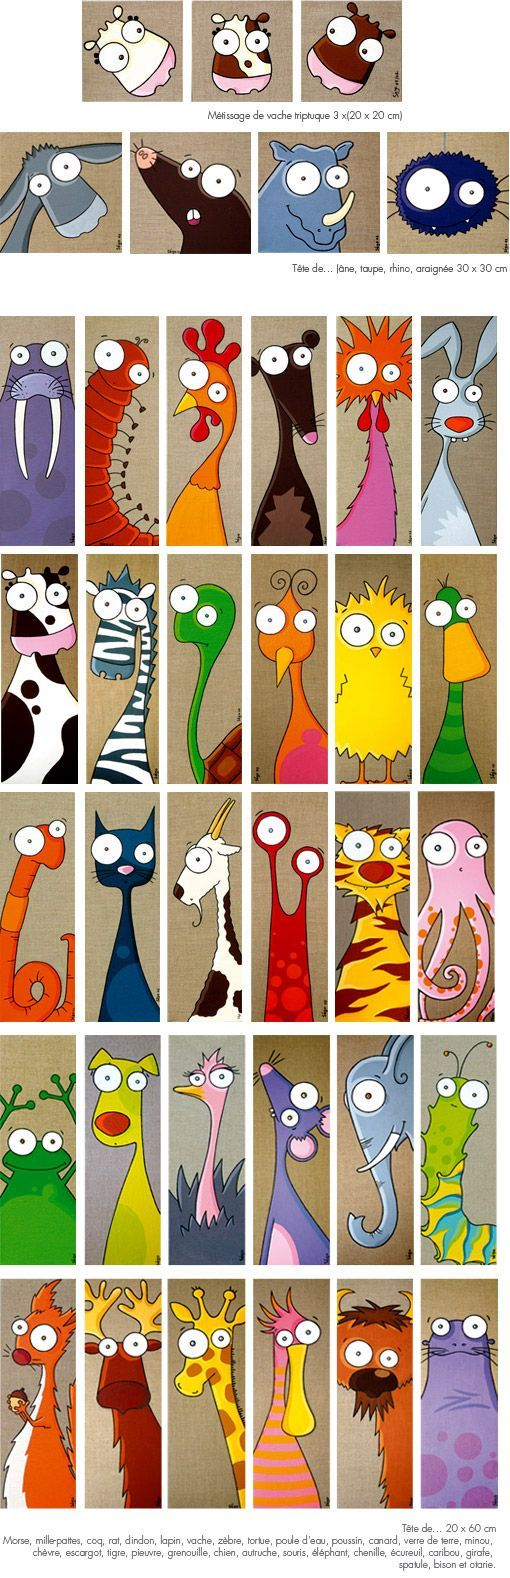 Funny animals/creatures. Inspiration for acrylic paint on tan base.